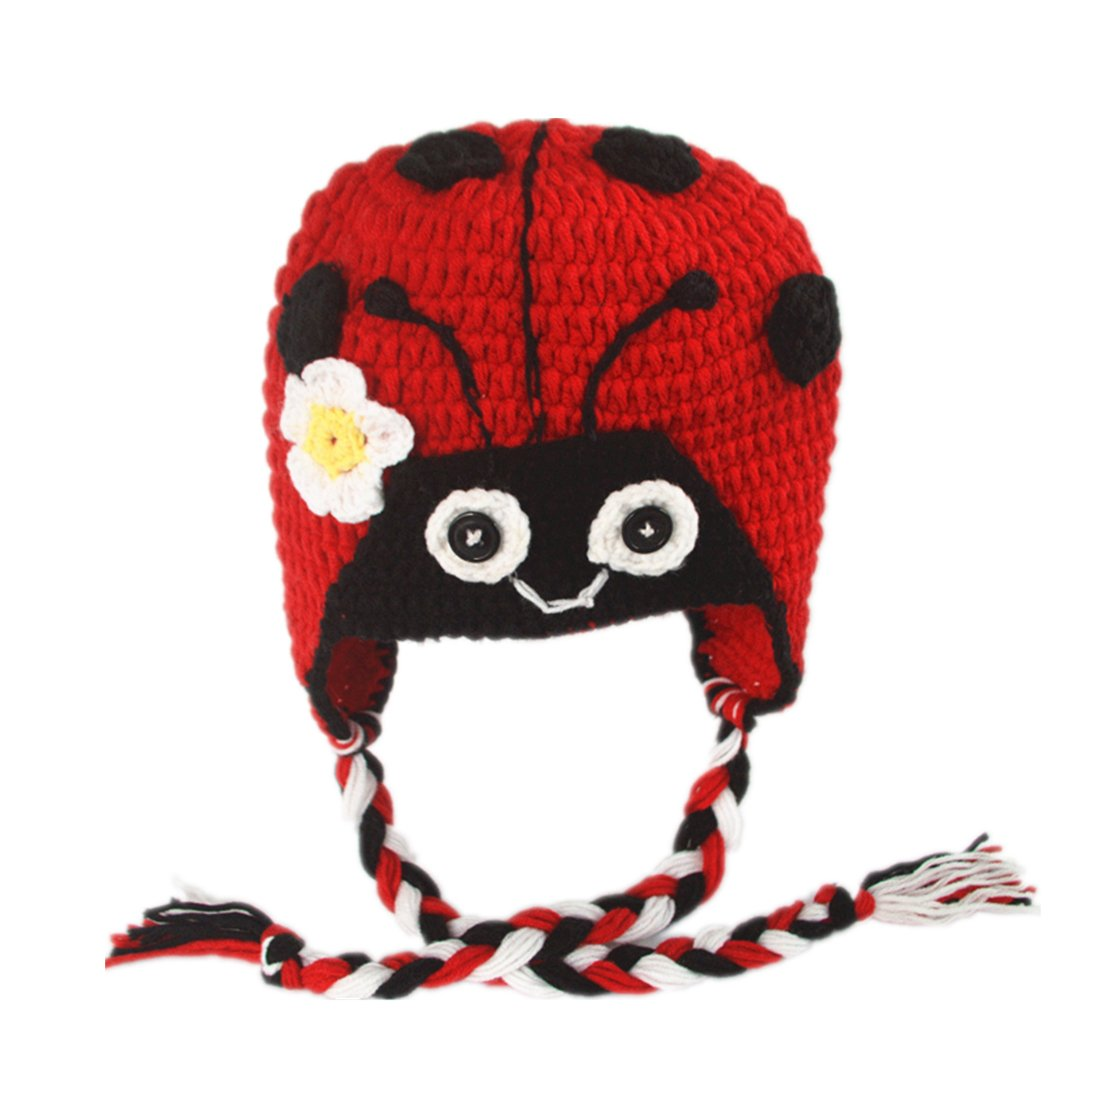 Amazon Generic Ladybug Animal Patterns Knit Crochet Earflap